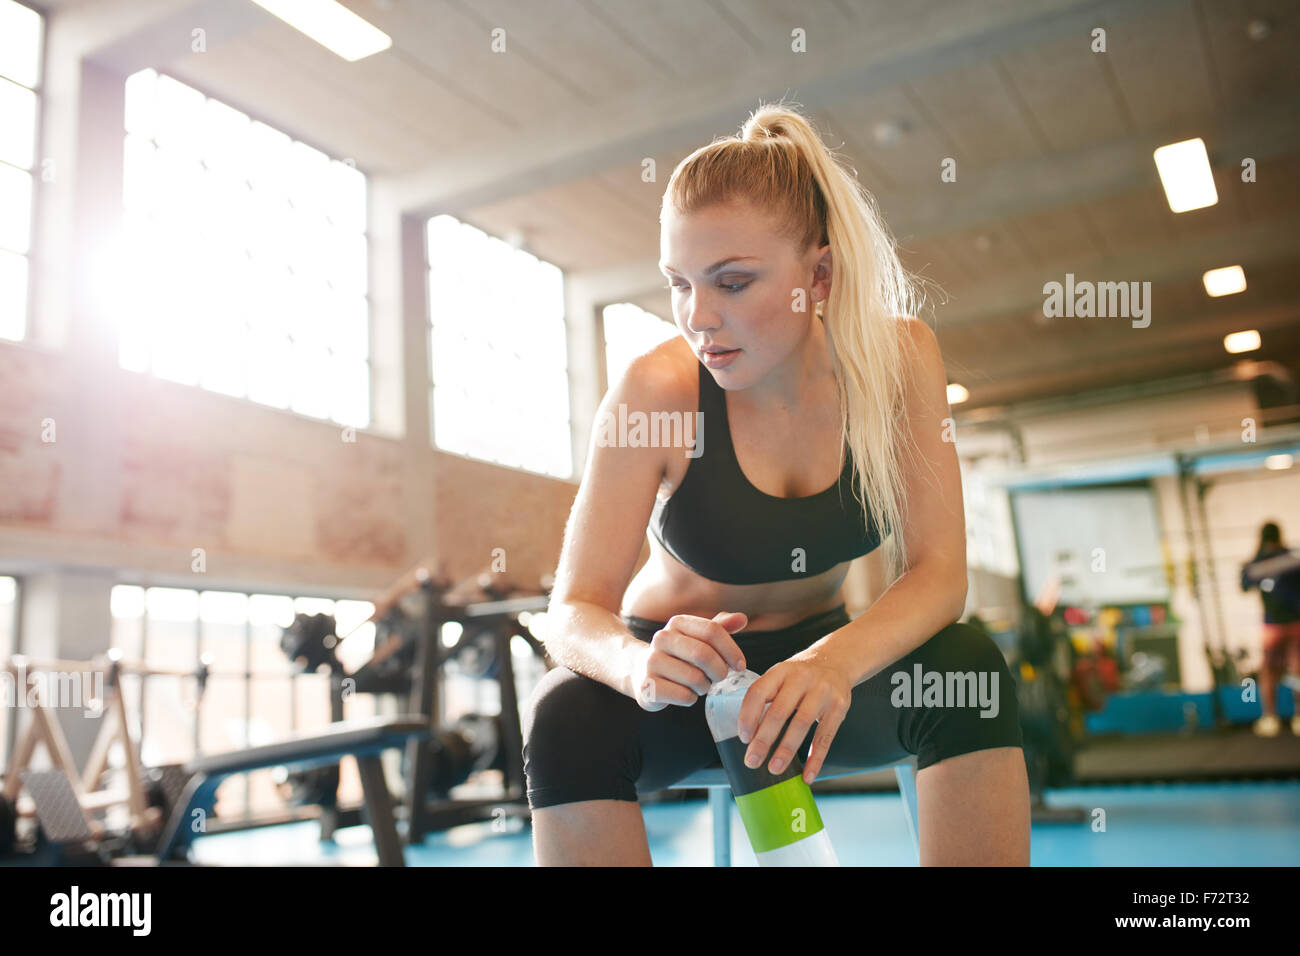 Portrait of young woman resting after workout at gym. Fitness female taking break after training session in health - Stock Image